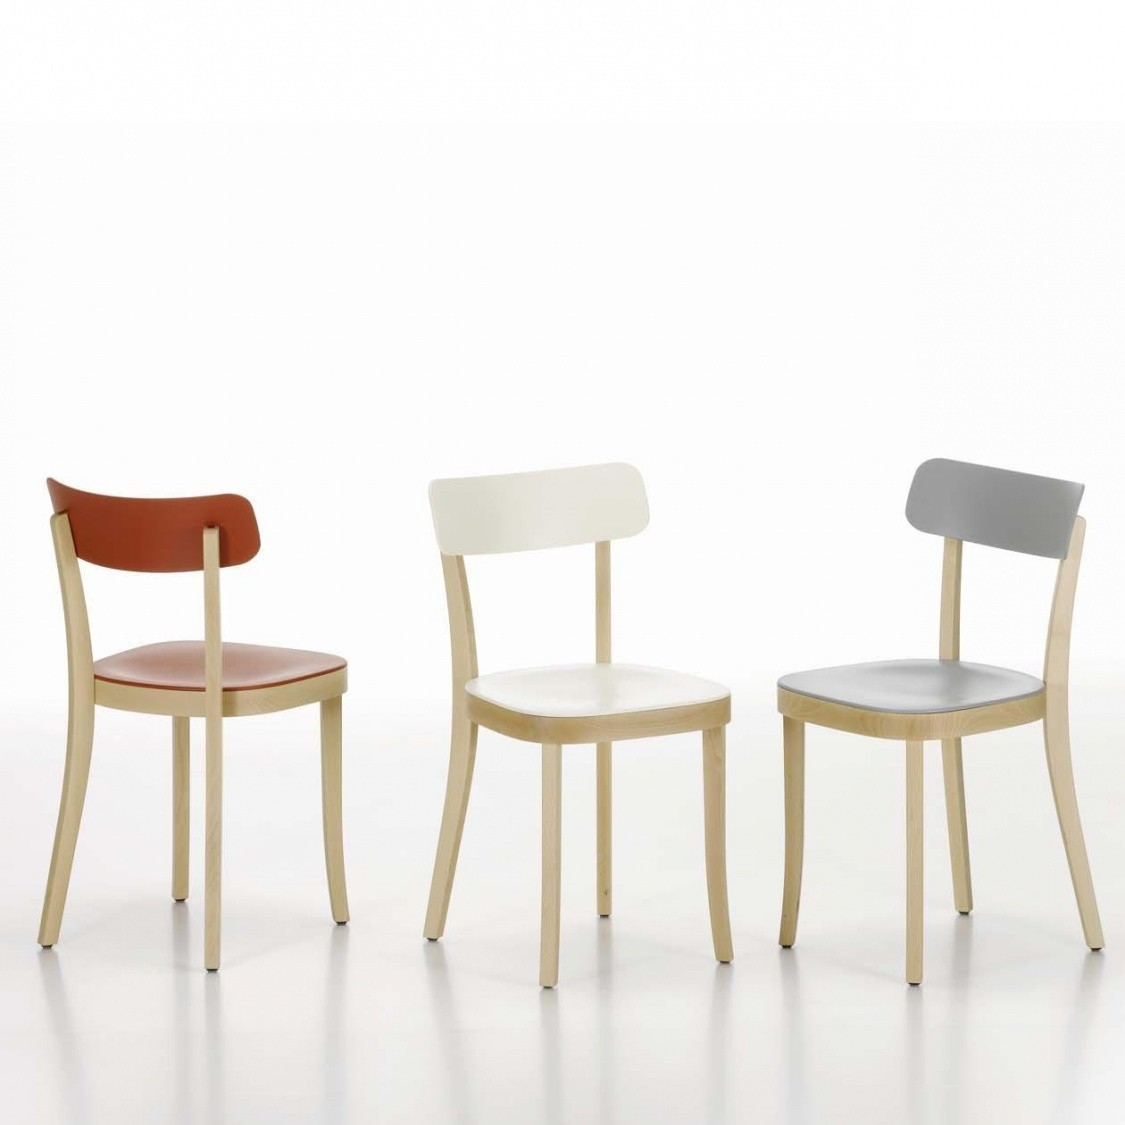 Stuhl Design Vitra Basel Chair Stuhl